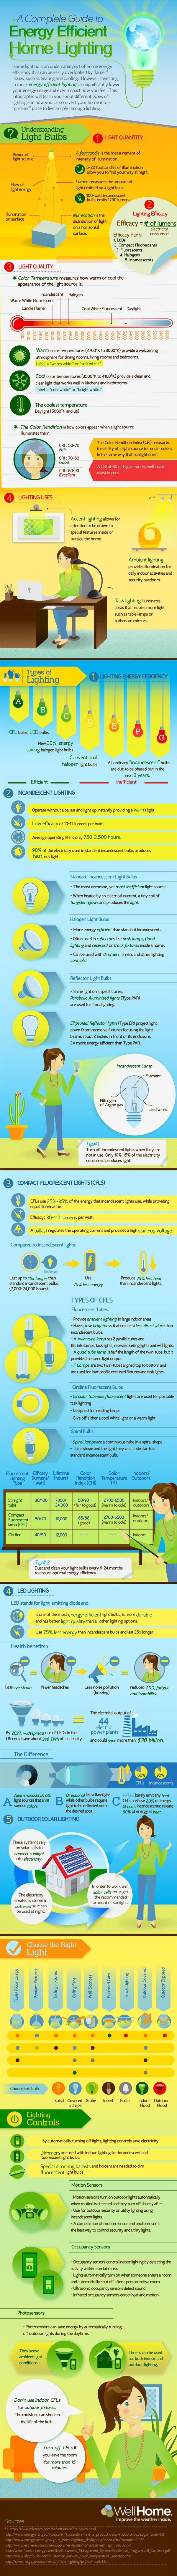 A Complete Guide to Energy Efficient Home Lighting